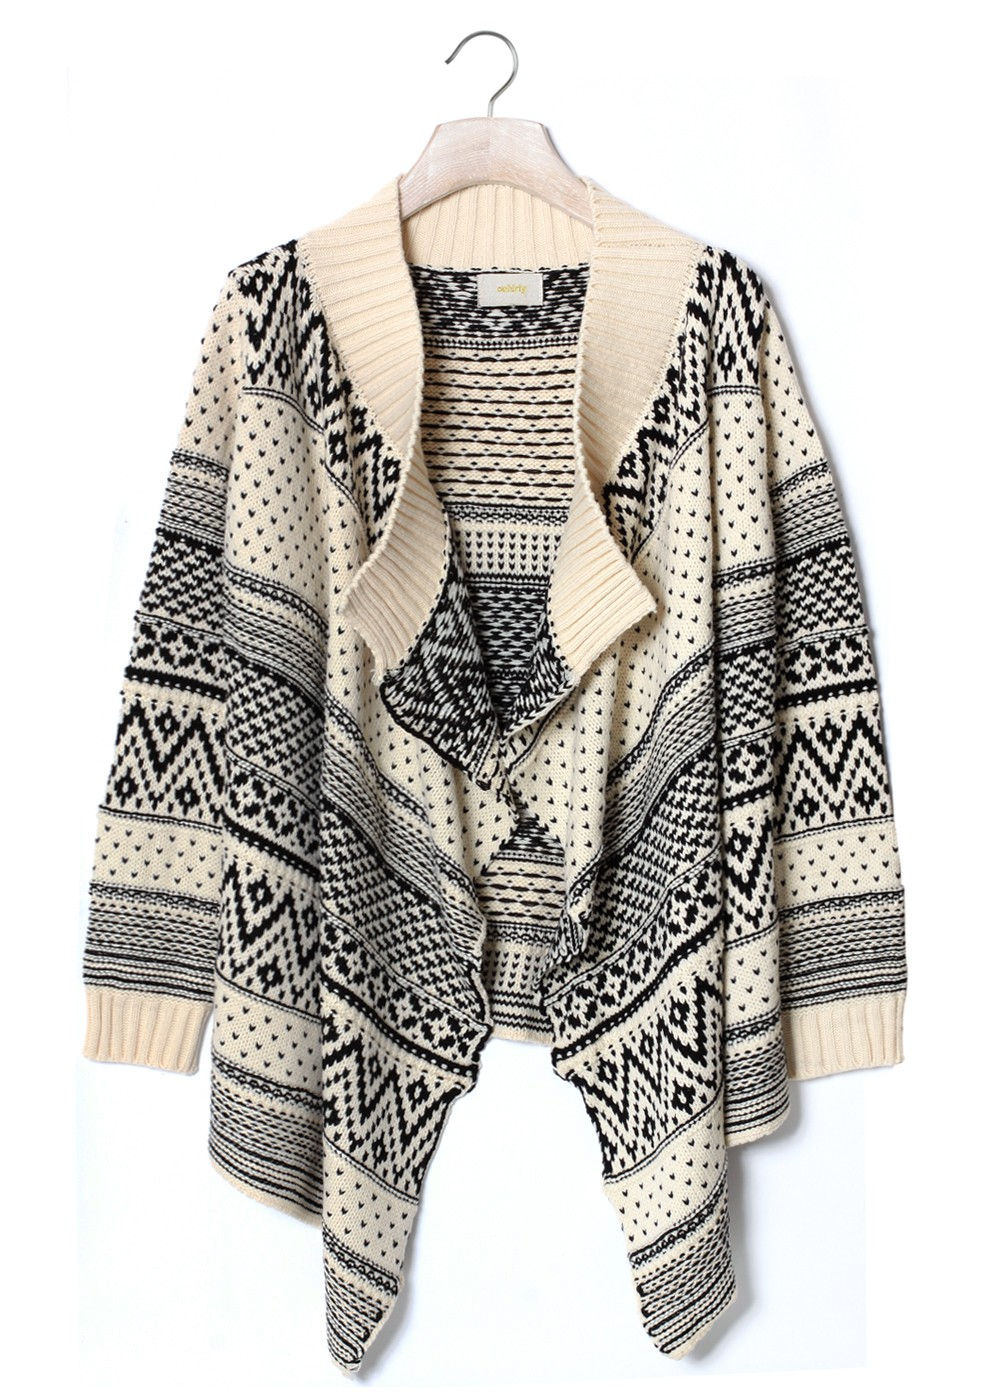 Multi Sweater - Zig-Zag Aztec Print Long Sleeve | UsTrendy